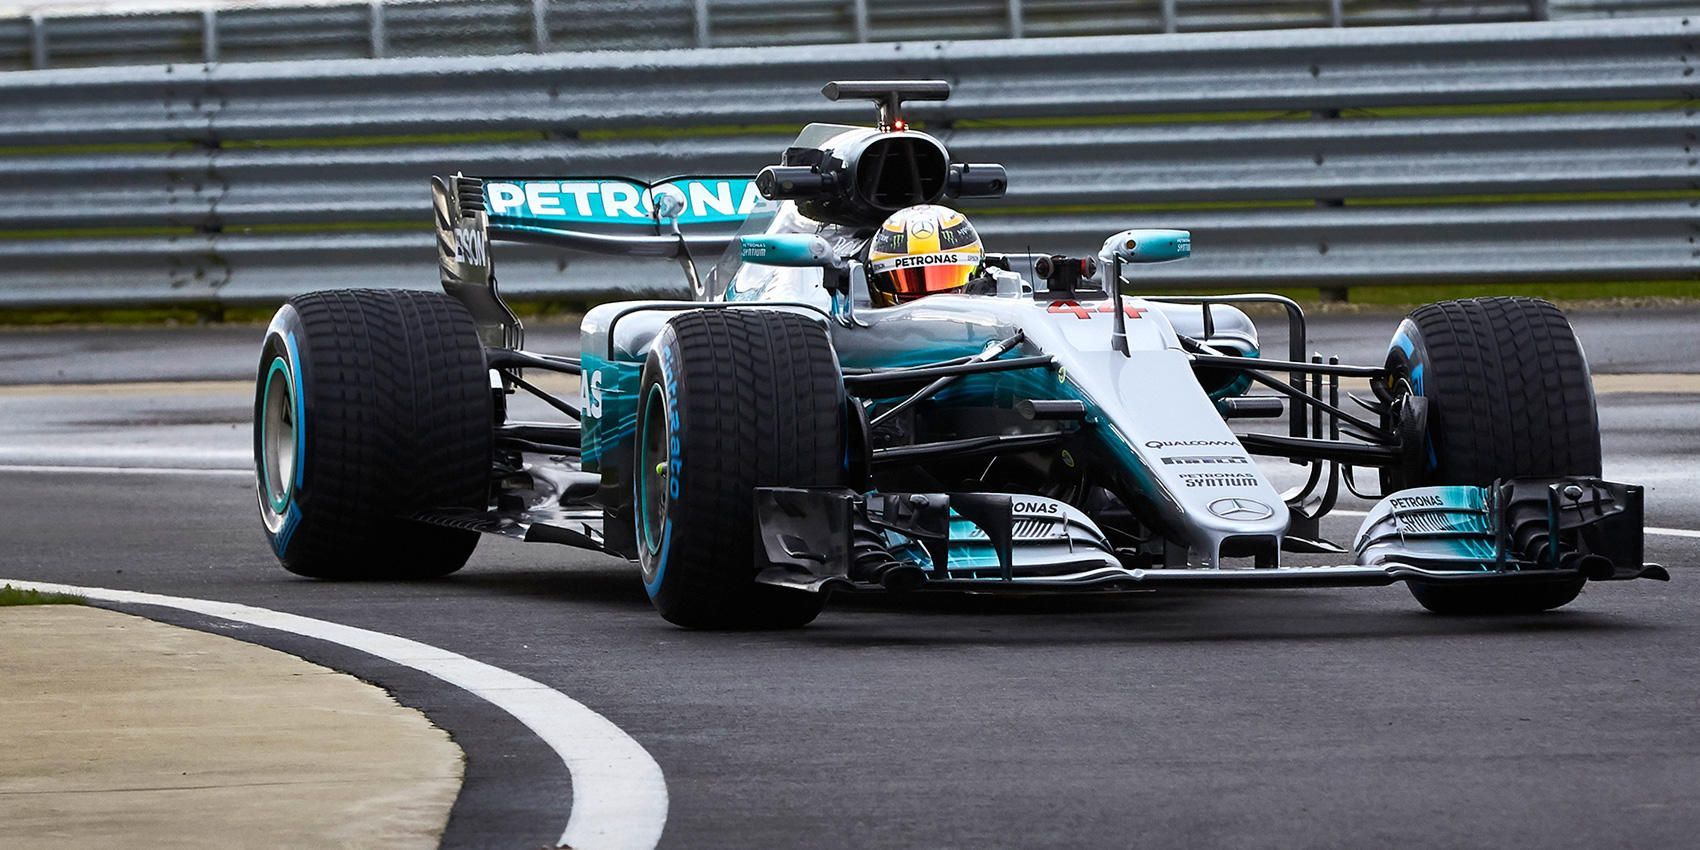 504b78085552e The 2017 Mercedes F1 Car Is The Gorgeous Racer With The Dumb Name We ve All  Been Waiting For